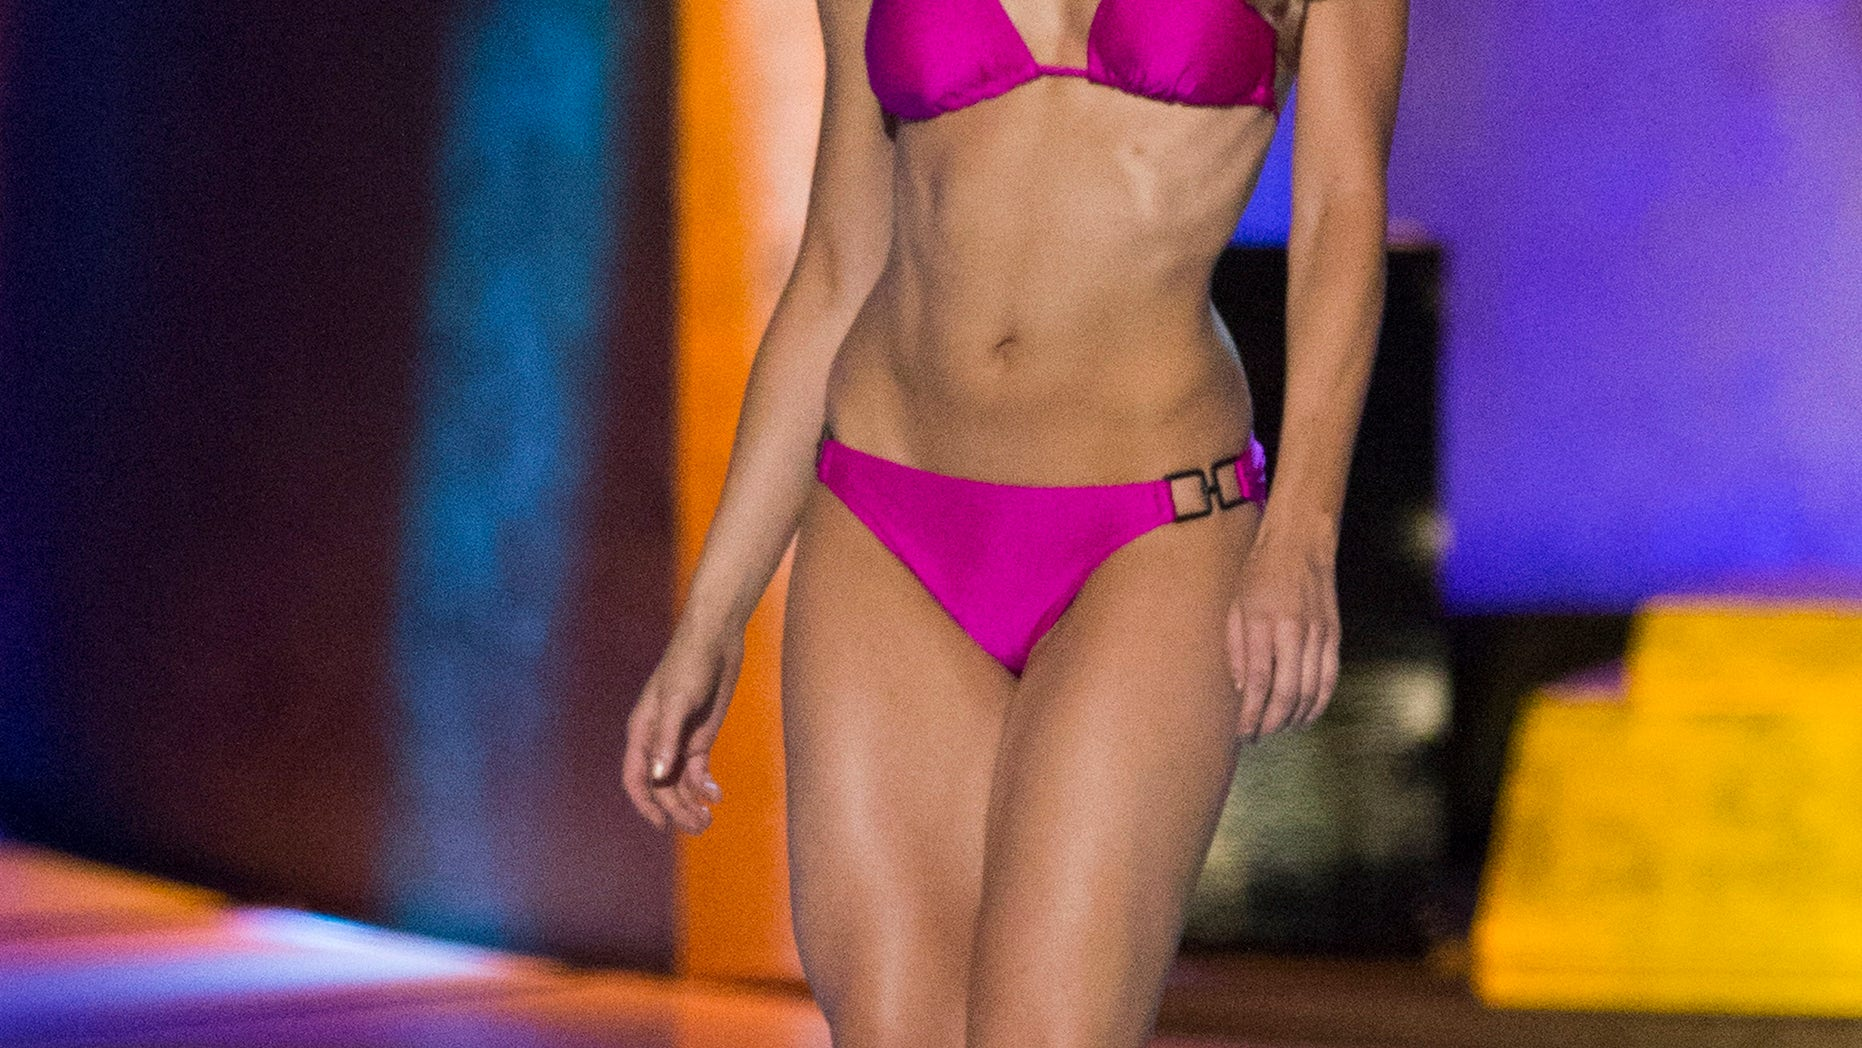 September 14, 2014. Miss New York Kira Kazantsev sports a swimsuit during the final 2015 Miss America Competition in Atlantic City, New Jersey.